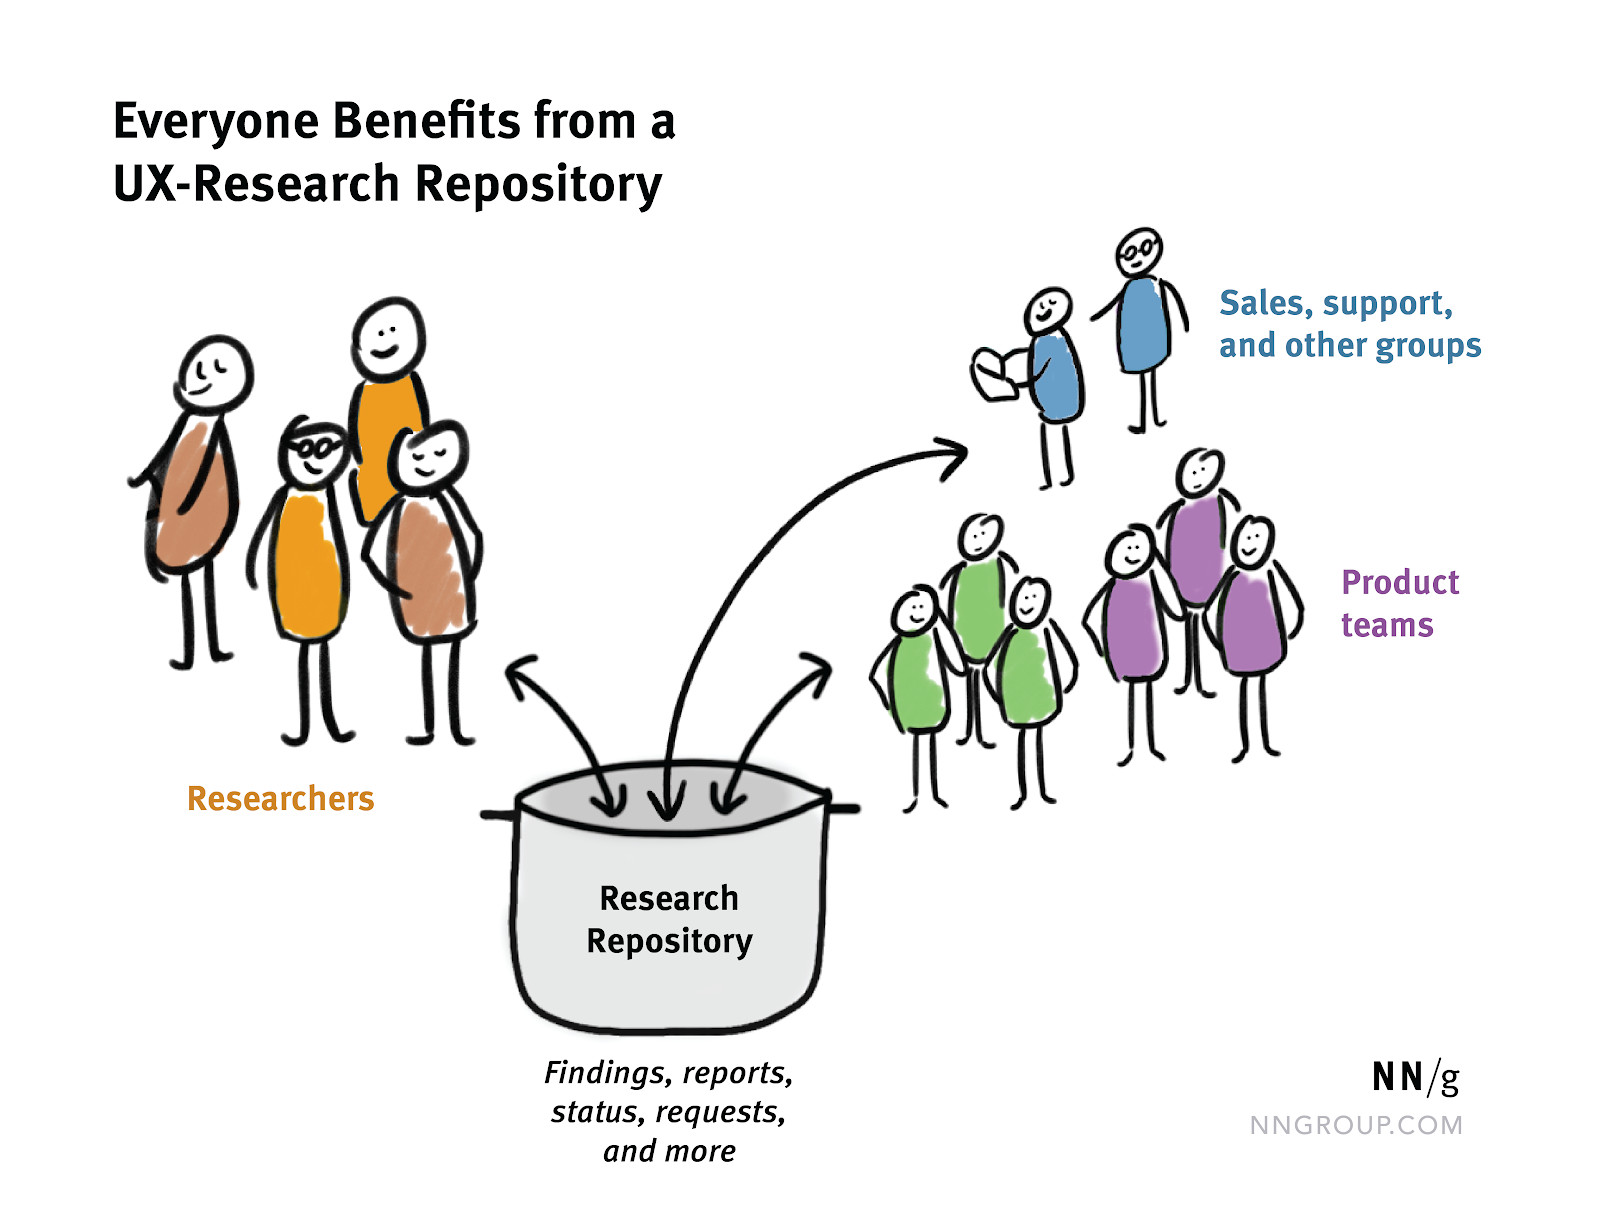 ux research repository illustration